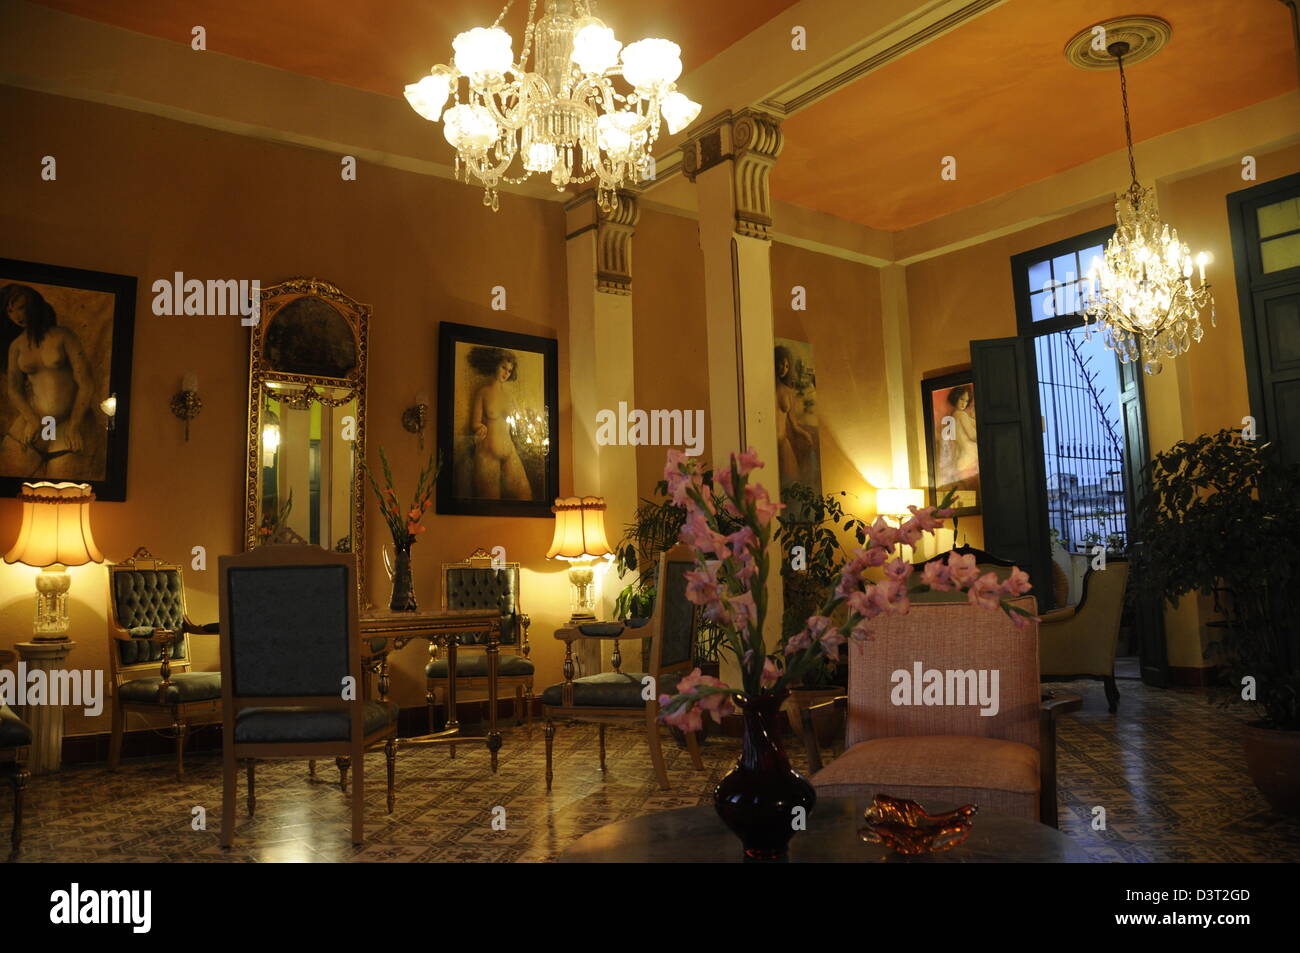 Casa Particular 'Casa Habana' with beuatiful furniture, old town Havana - Stock Image